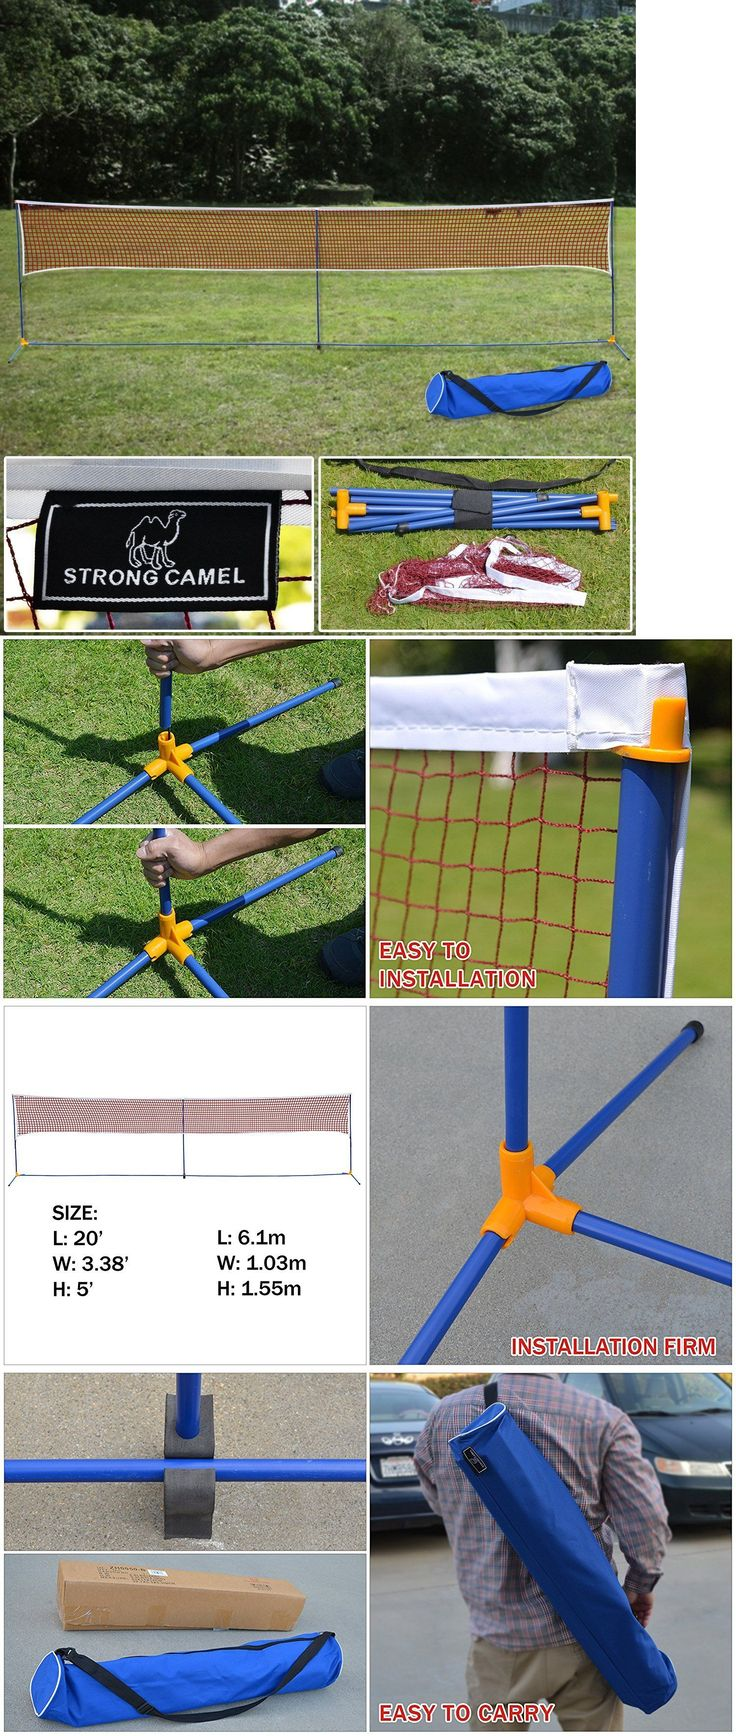 Badminton 106460: Portable 3-In-1Training Beach Volleyball Badminton Tennis Net Set With Carrying BUY IT NOW ONLY: $50.0